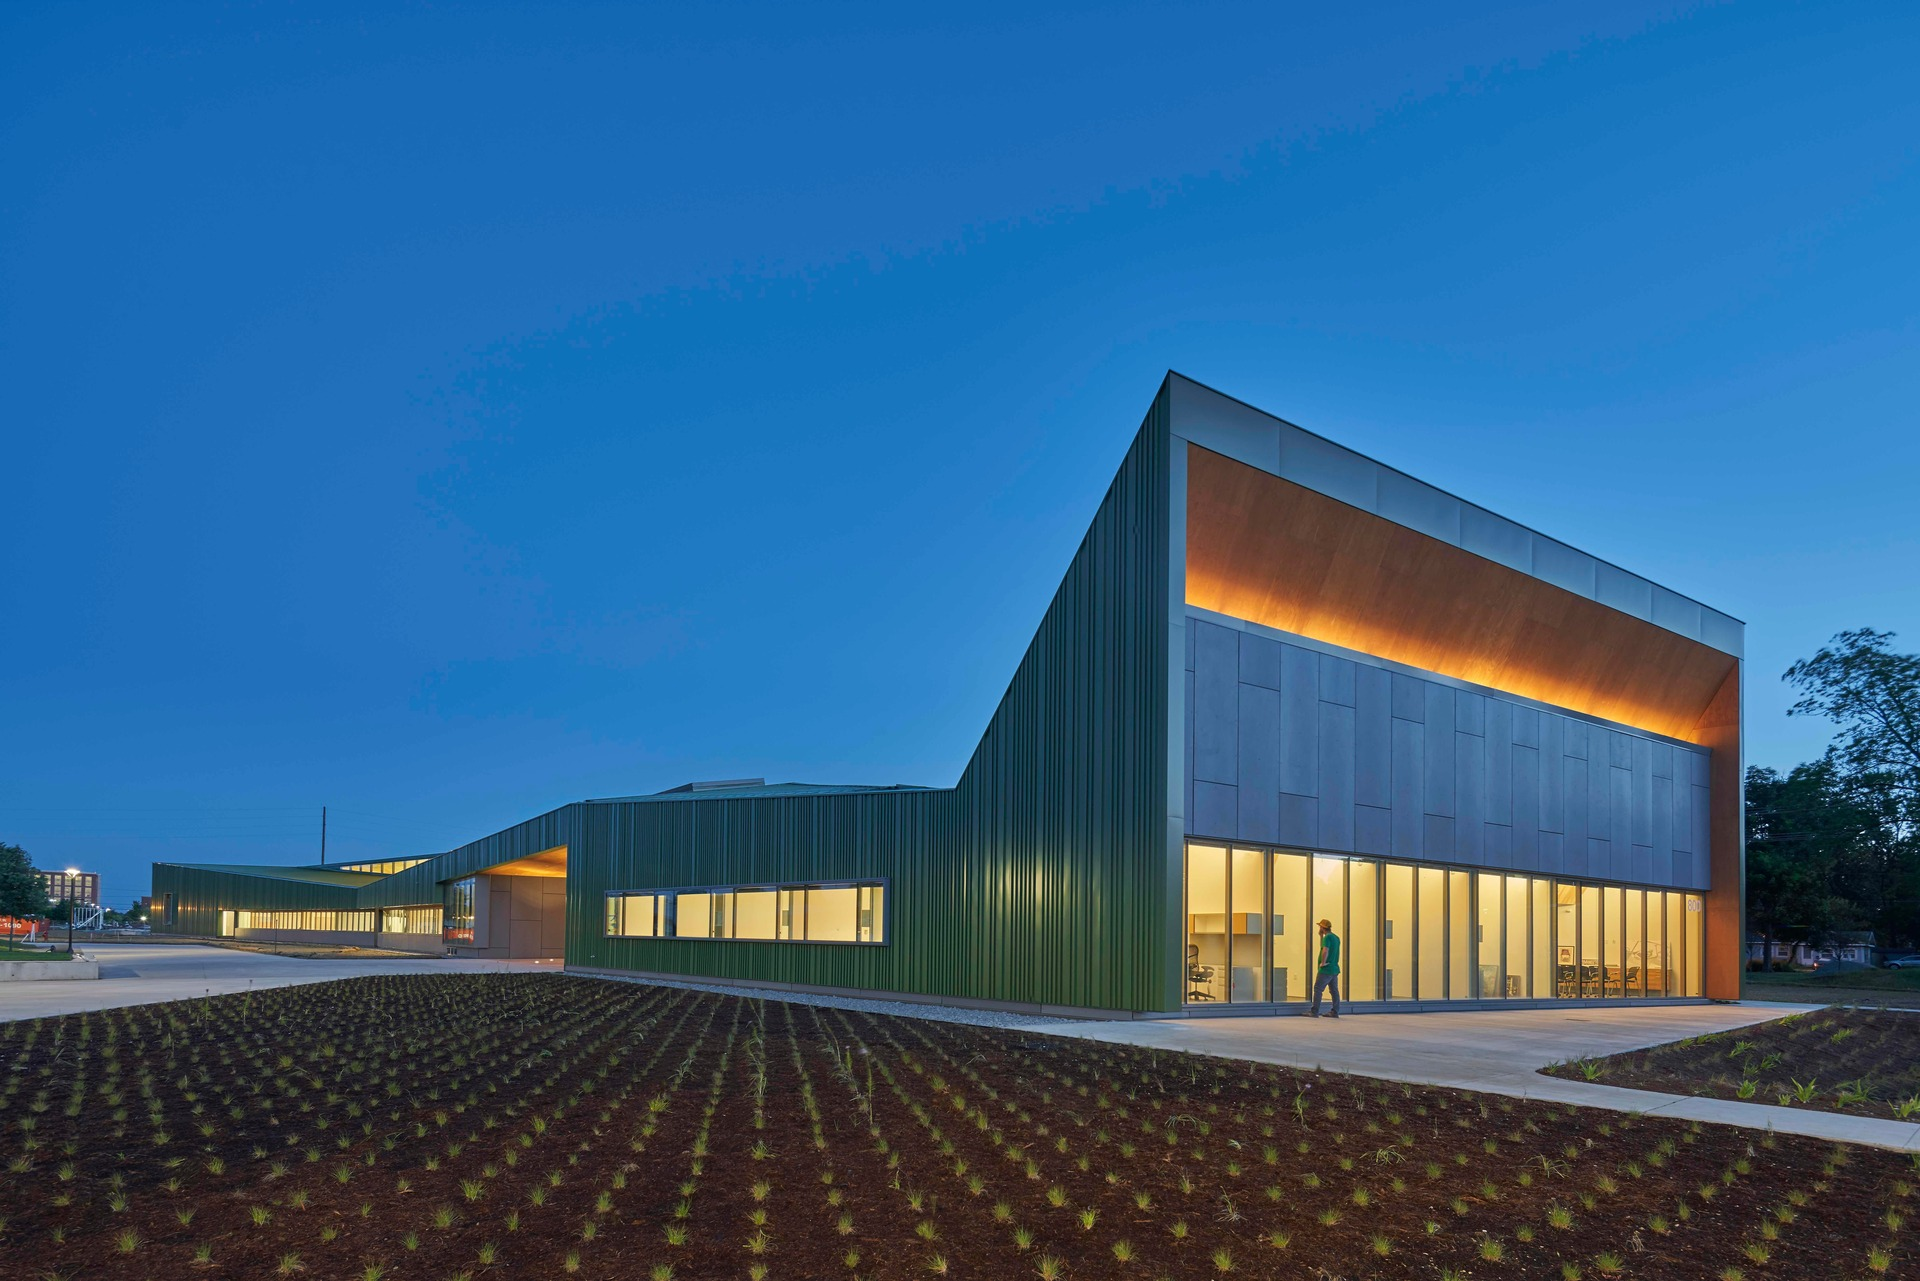 Imagining Louise Thaden viewing the school campus from the air, she would see its symmetrical elegance: The performing arts center and great hall buildings are finished in white anchoring the northeast and southwest corners, and the Reels and Wheels buildings sparkle in metallic green on the opposite corners. The structures integrate with gardens, pedestrian pathways, and an extensive trail network throughout Northwest Arkansas to connect Thaden School with its community, its culture, its ecology, its history, and its aspirations for the future.  Photo credit: Tim Hursley